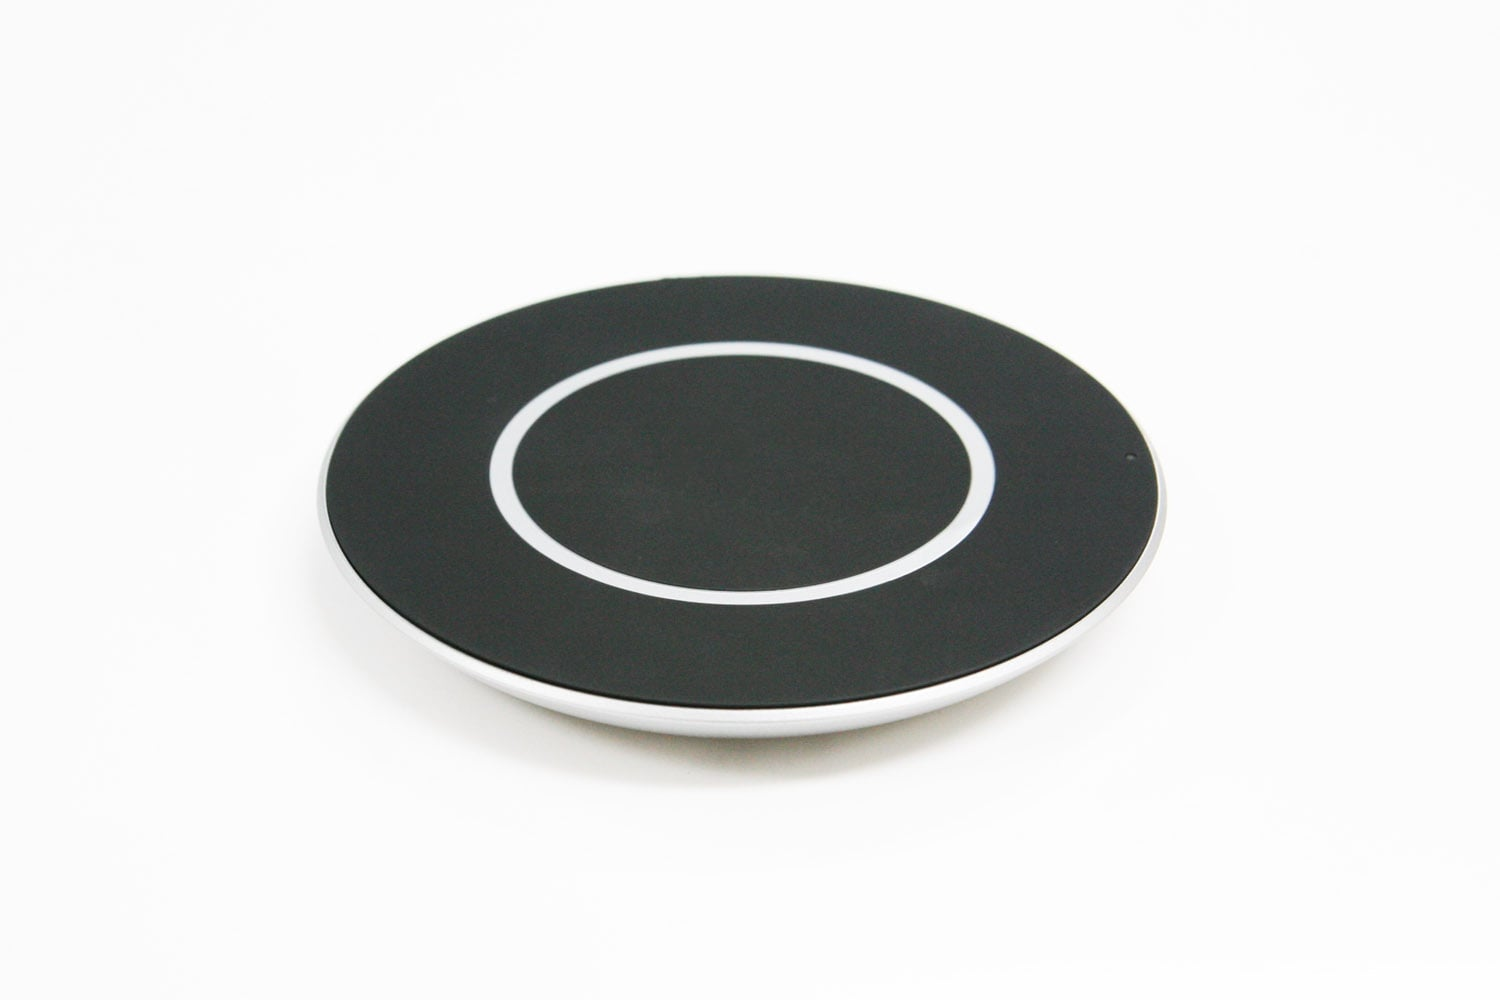 LGs-Quick-Wireless-Charging-Pad (1)